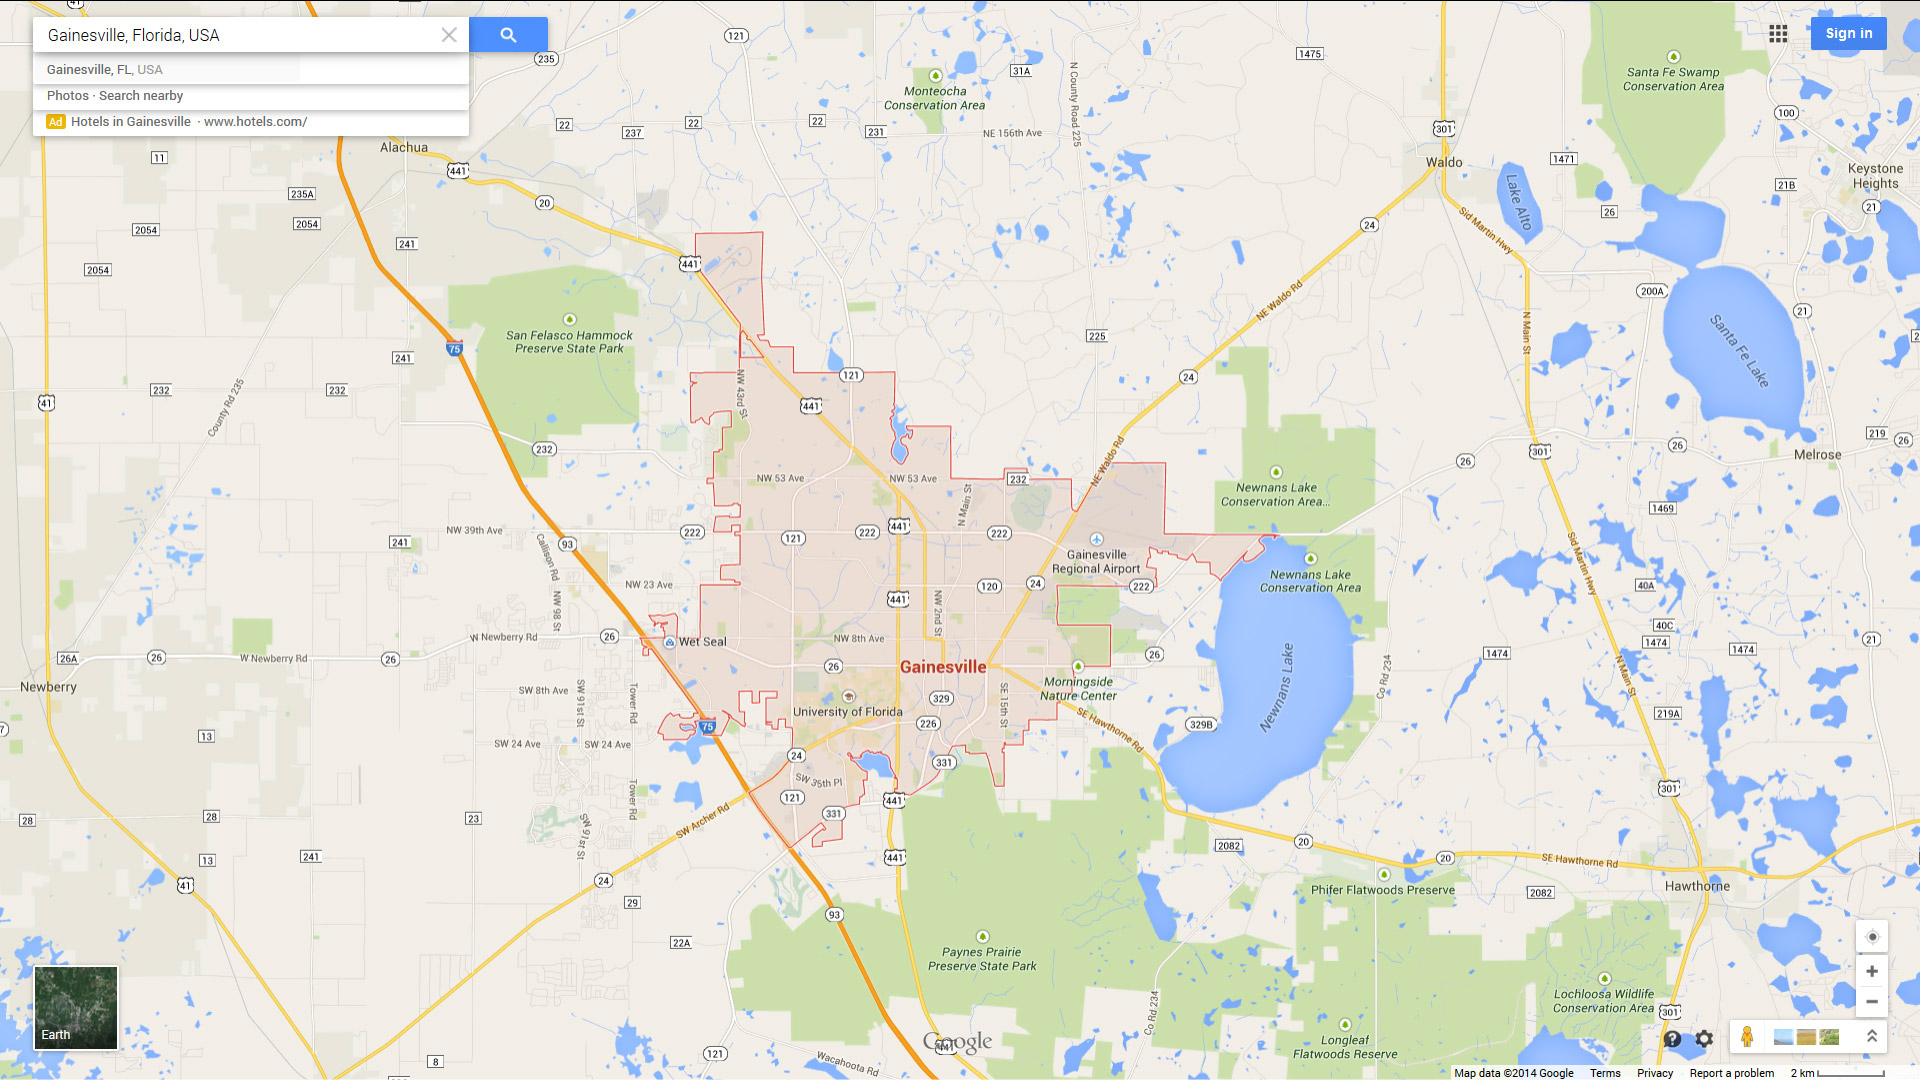 Gainesville, Florida Map - Where Is Gainesville Florida On The Map